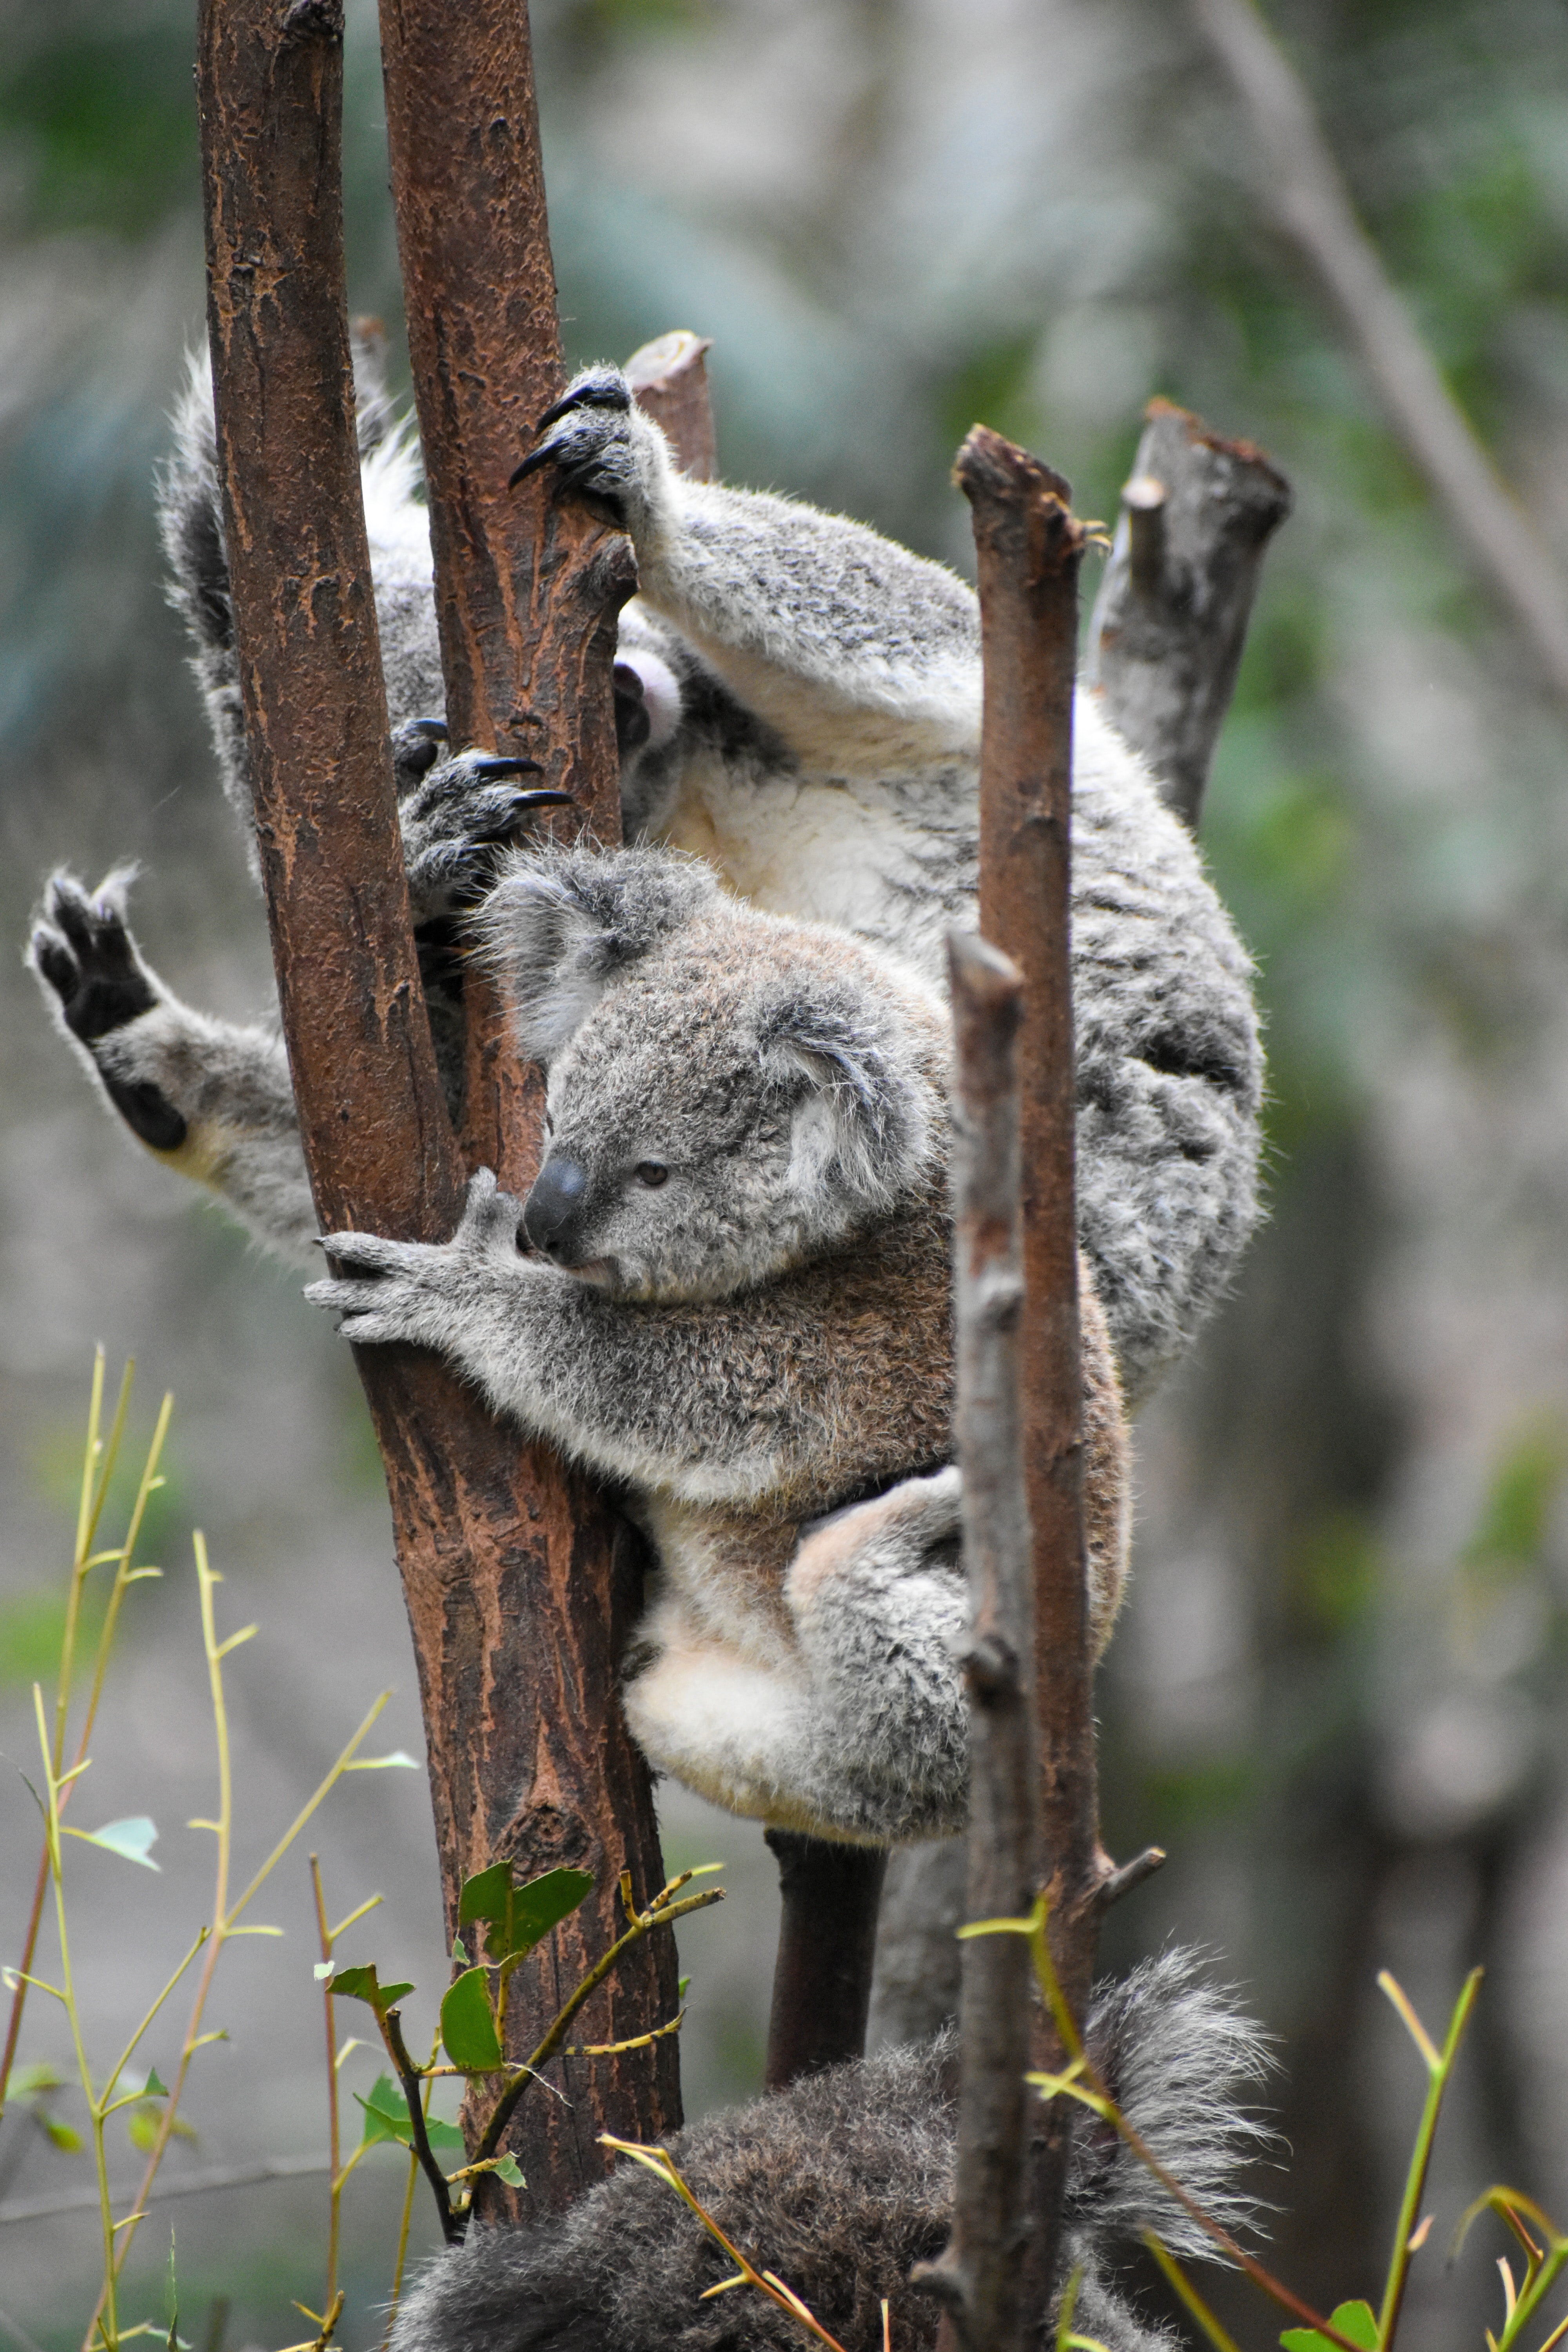 56316 download wallpaper Funny, Animals, Koalas, Wood, Tree, Branches, Koala screensavers and pictures for free